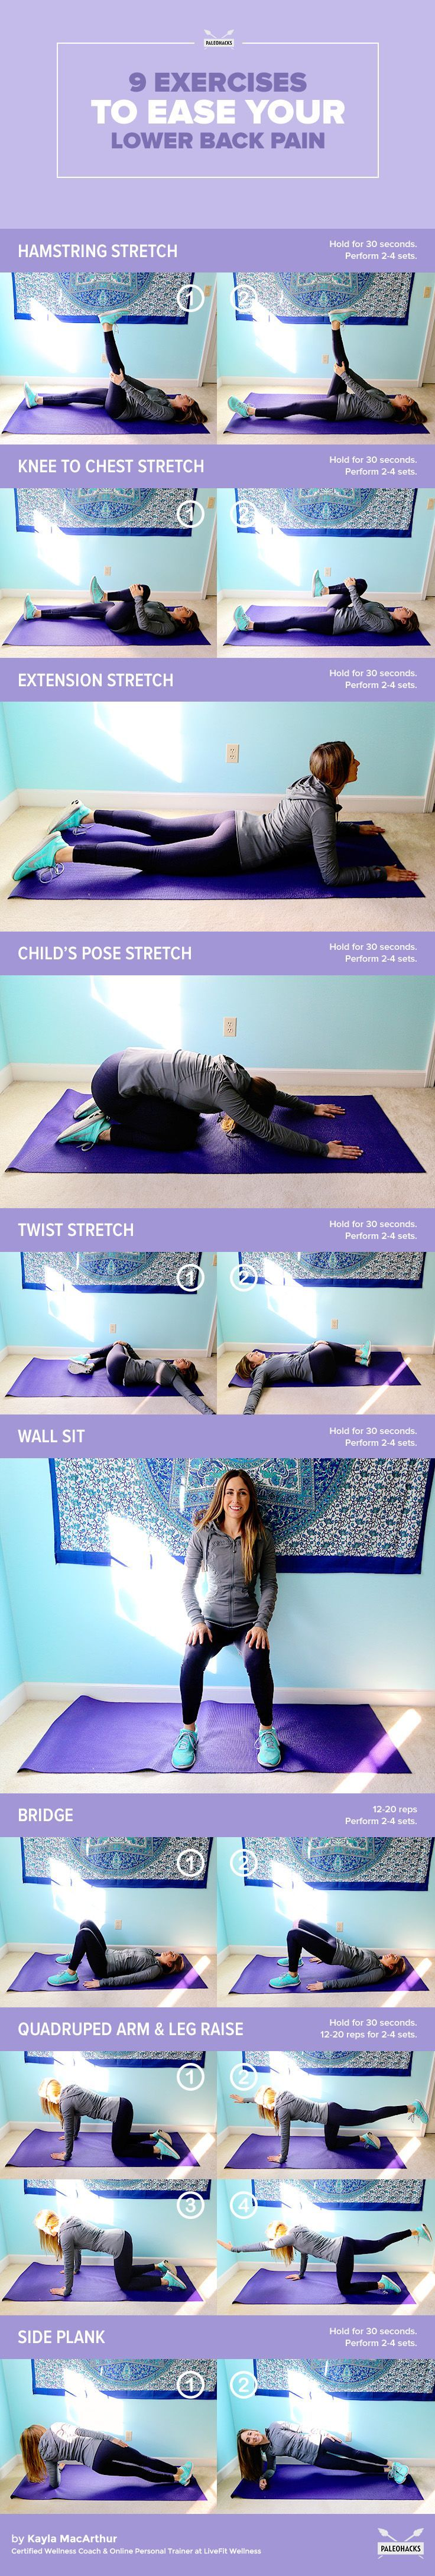 These exercises directly stretch and strengthen your muscles to relieve tension in your lower back, as well as to provide you with a strong core foundation.